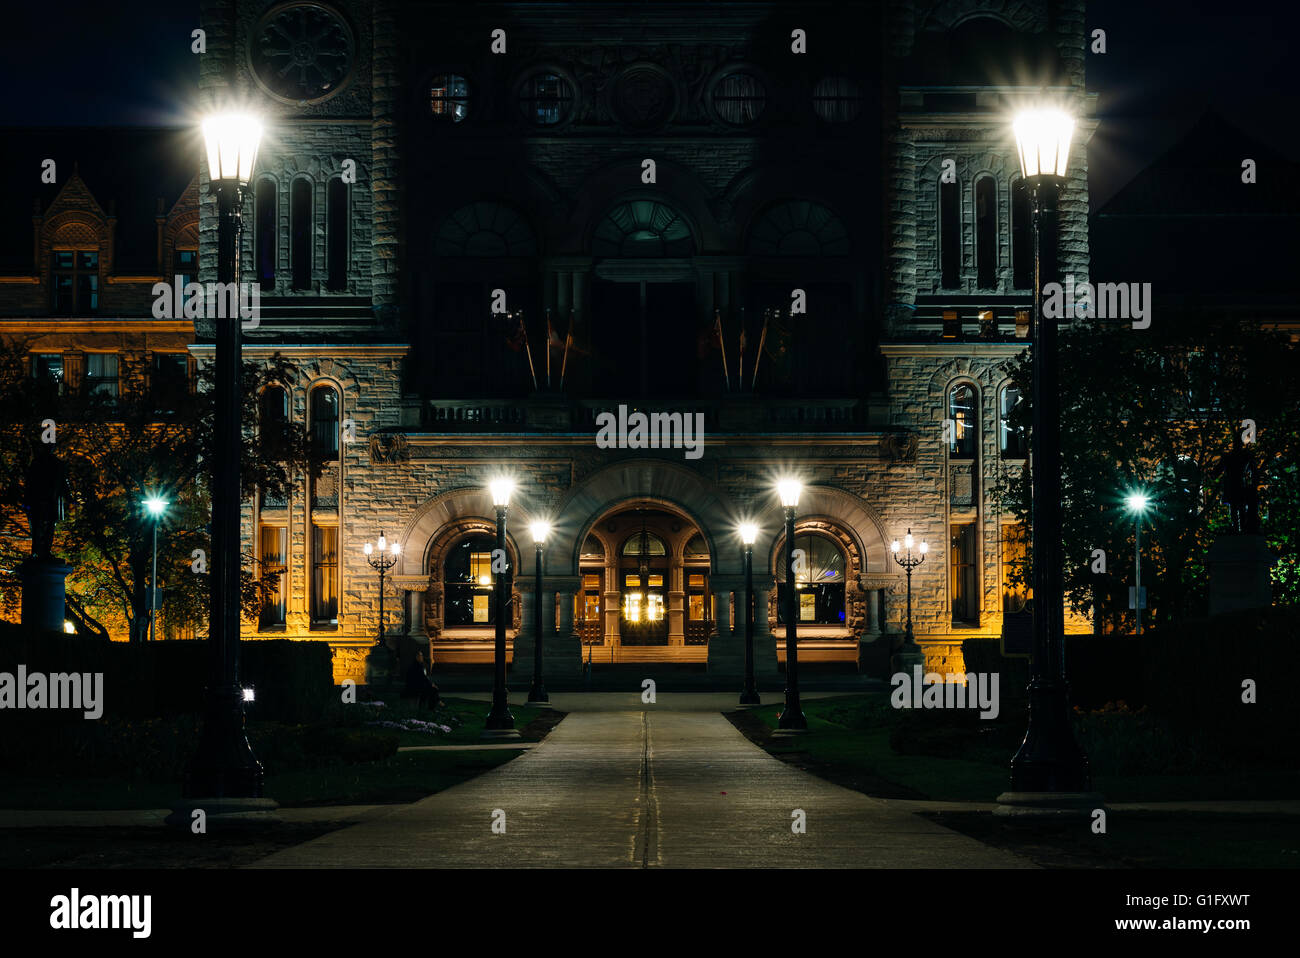 The Legislative Assembly of Ontario at night, at Queen's Park, in Toronto, Ontario. - Stock Image